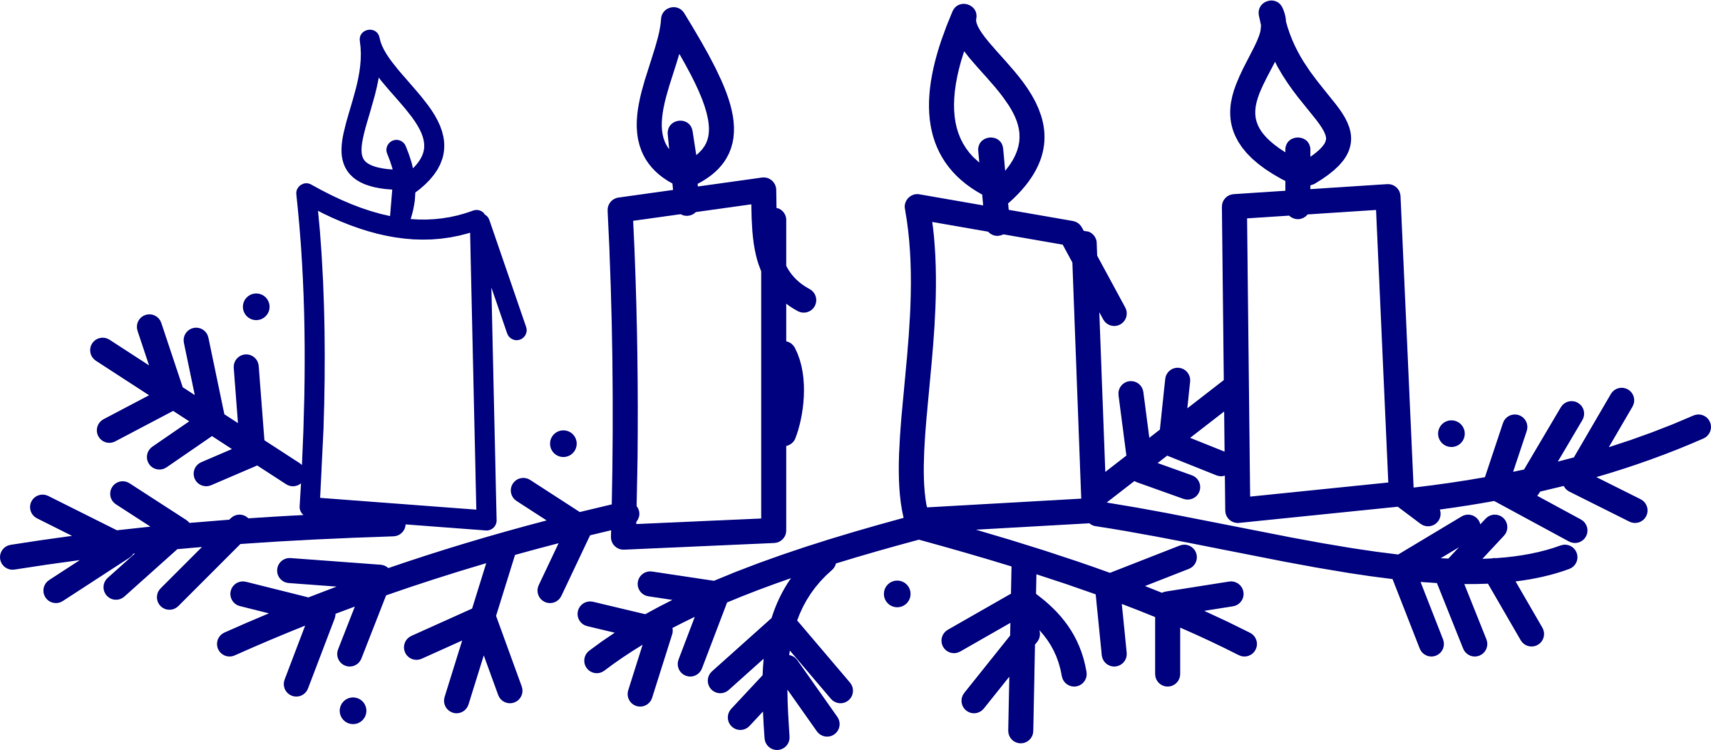 Free clipart advent candles clip transparent library Advent Clipart To Free - Clip Art Advent Candles - Png Download ... clip transparent library